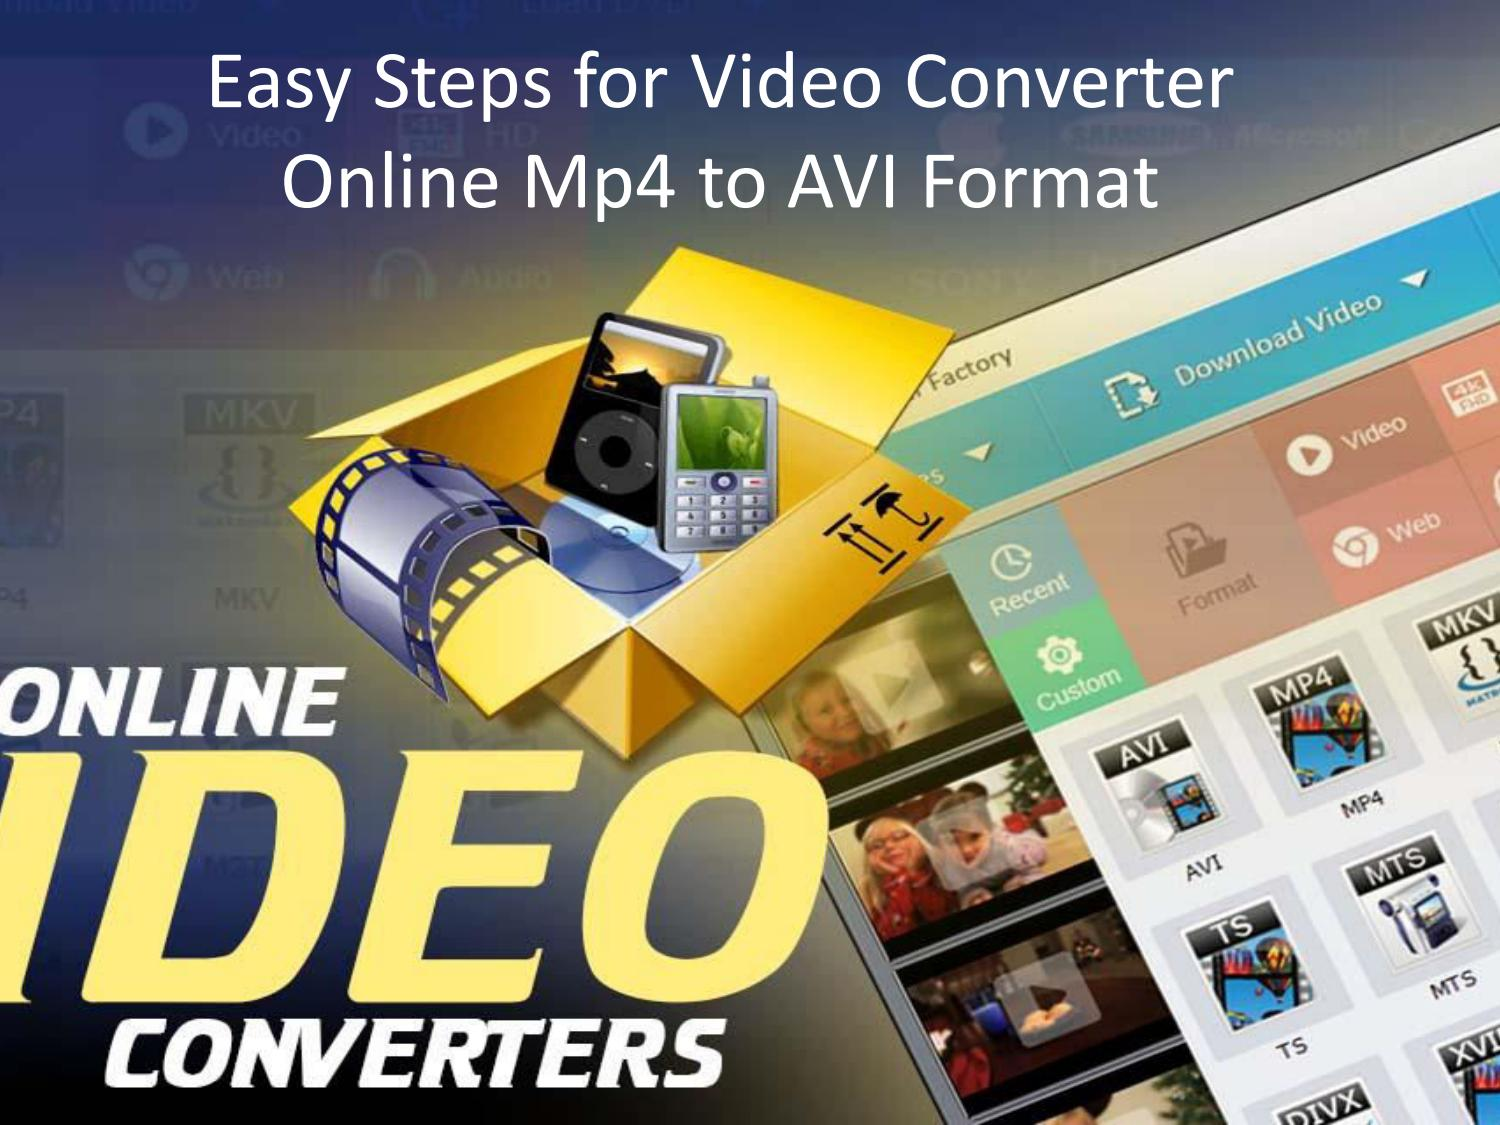 Easy Steps for Video Converter Online Mp4 to AVI Format by